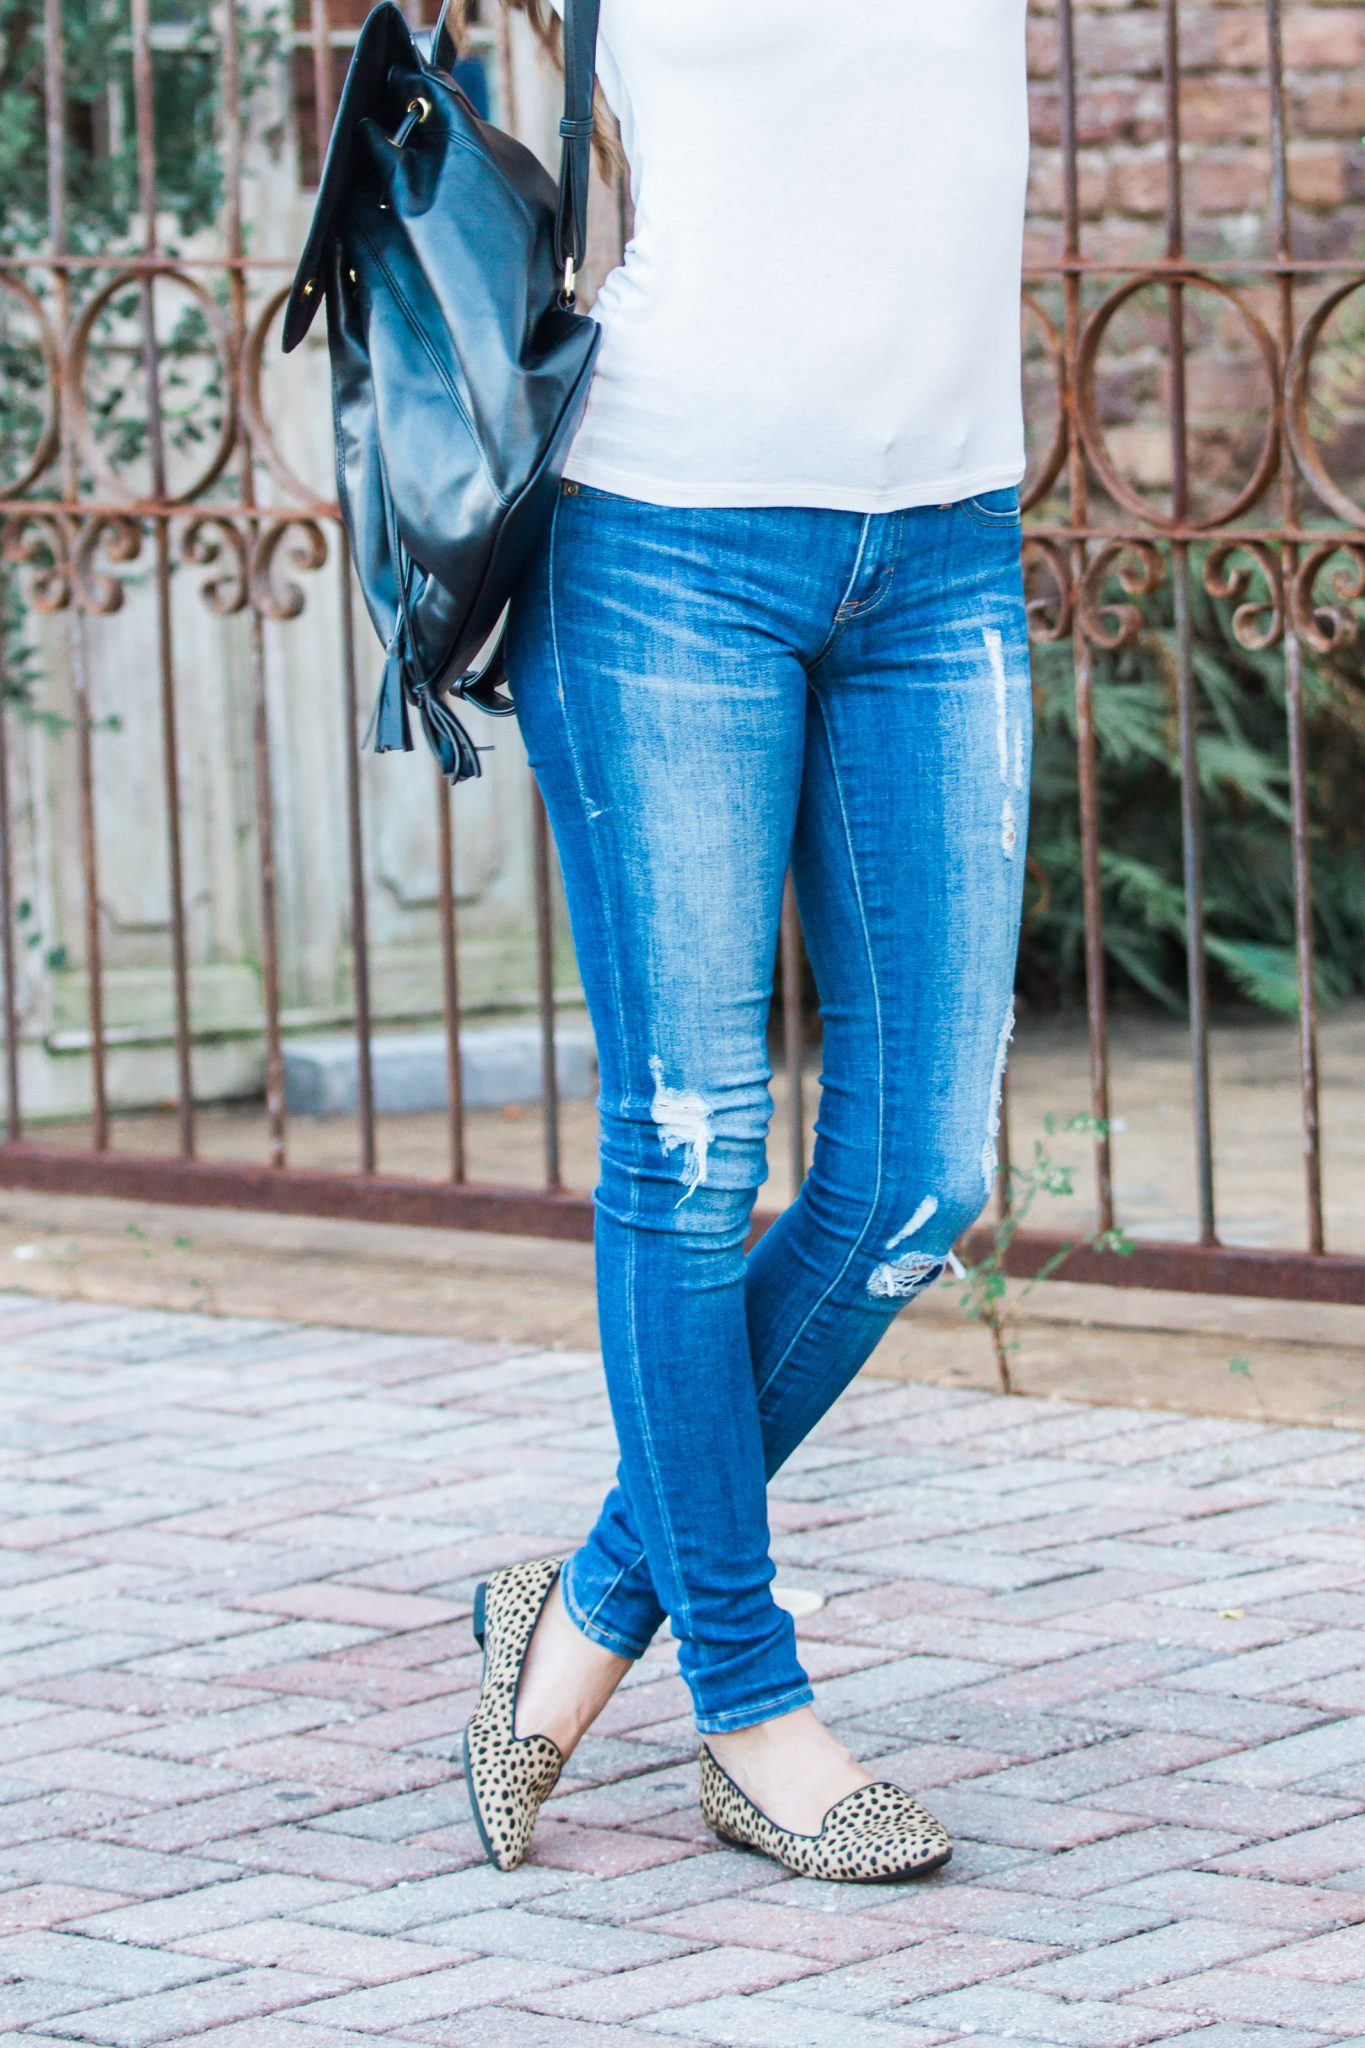 classic white tee and jeans for fall, classic fall style, simple fall style, how to wear a t shirt and jeans, red lipstick